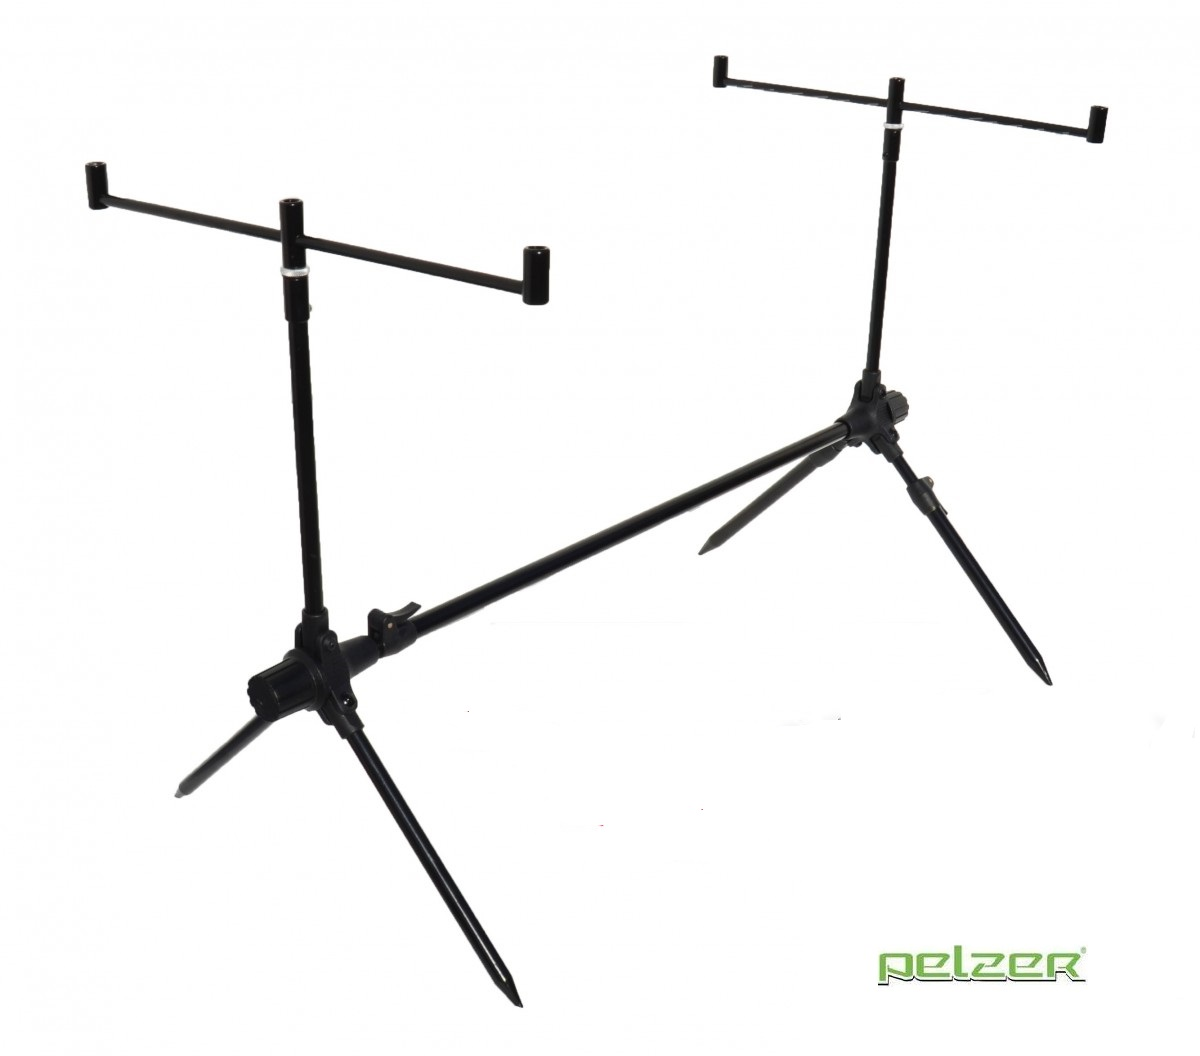 Stojan Pelzer Folding Eco Rod Pod